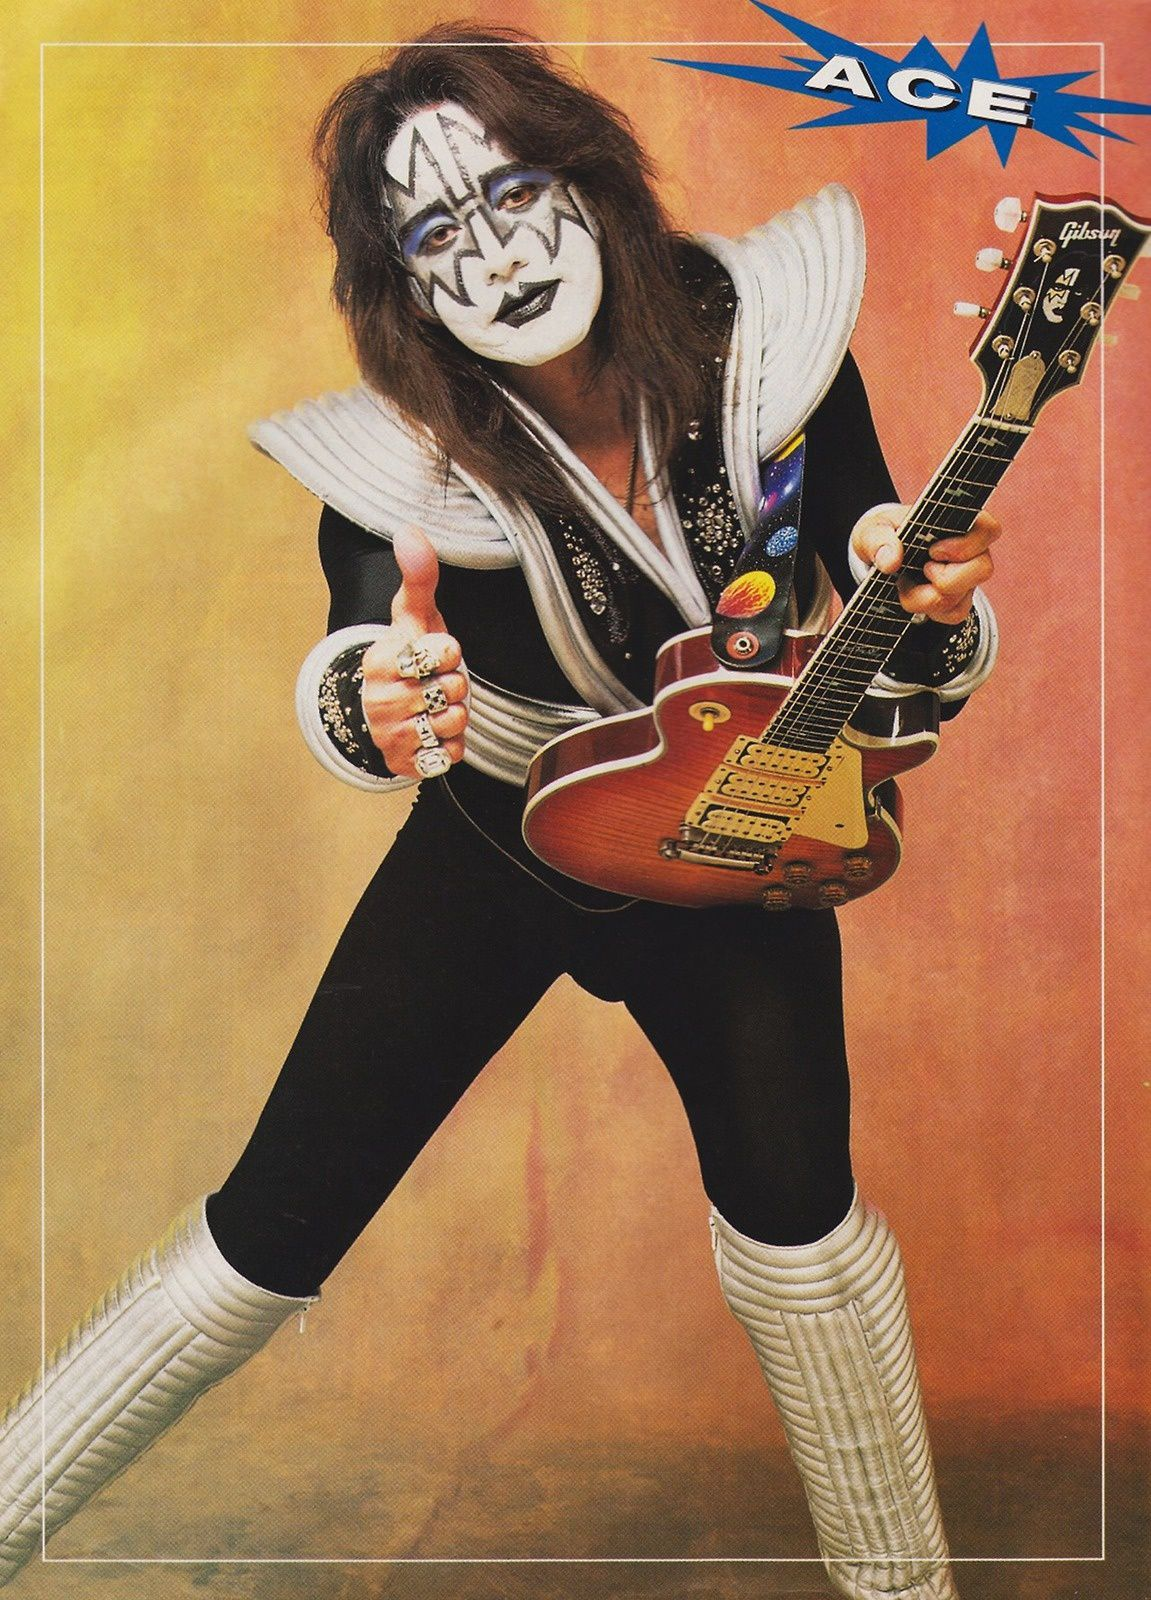 Ace Frehley - 1998 - KISS - Psycho Circus Photo Shoot